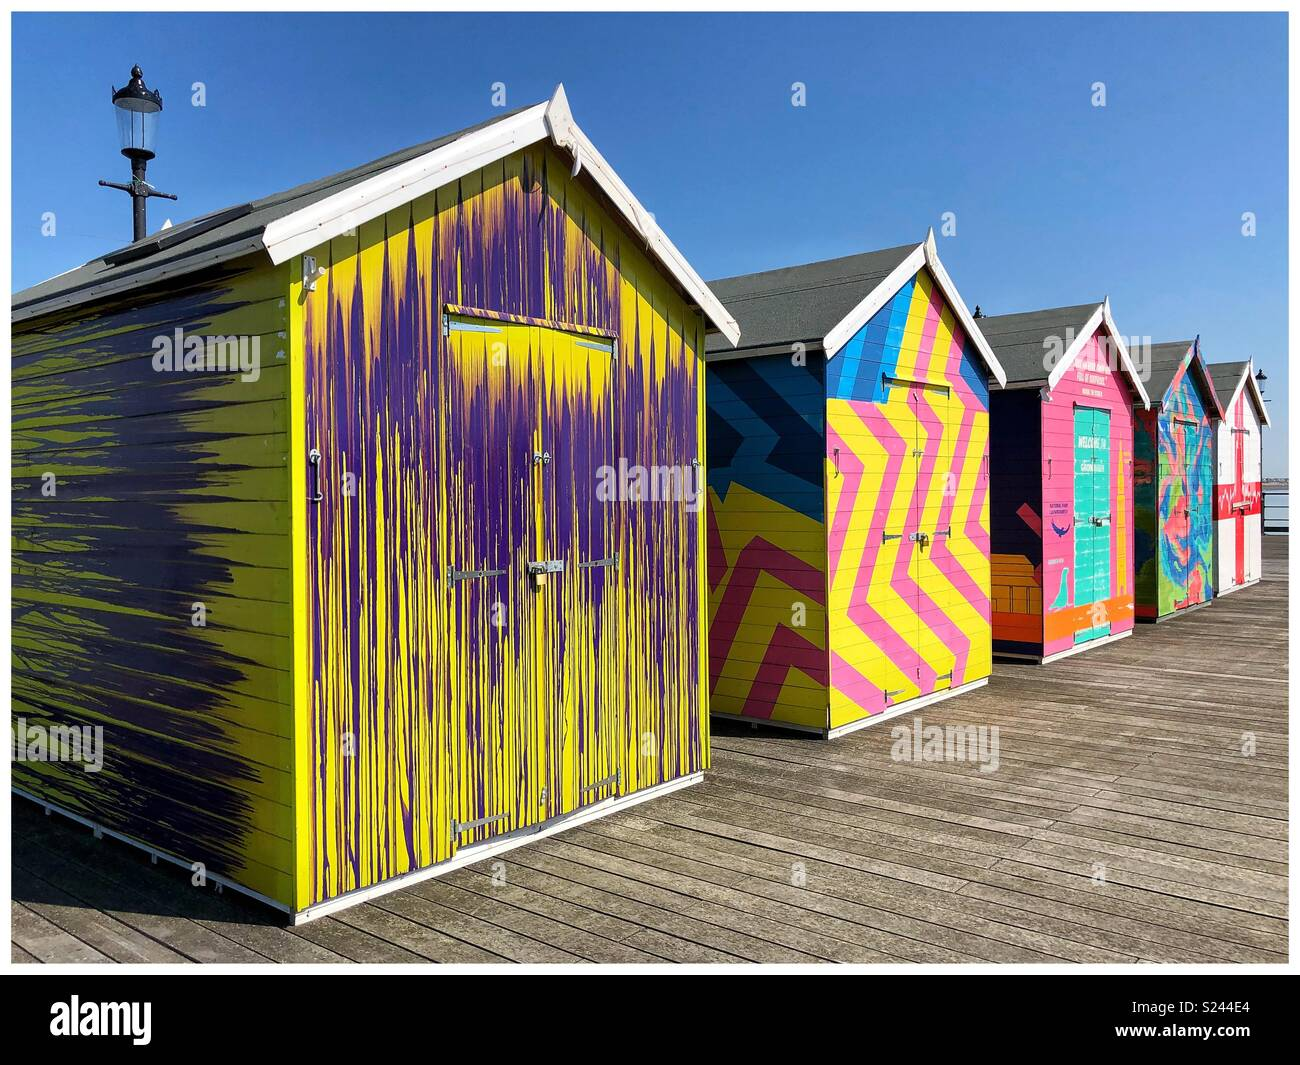 Colourful beach huts at Southend Pier, London - Stock Image